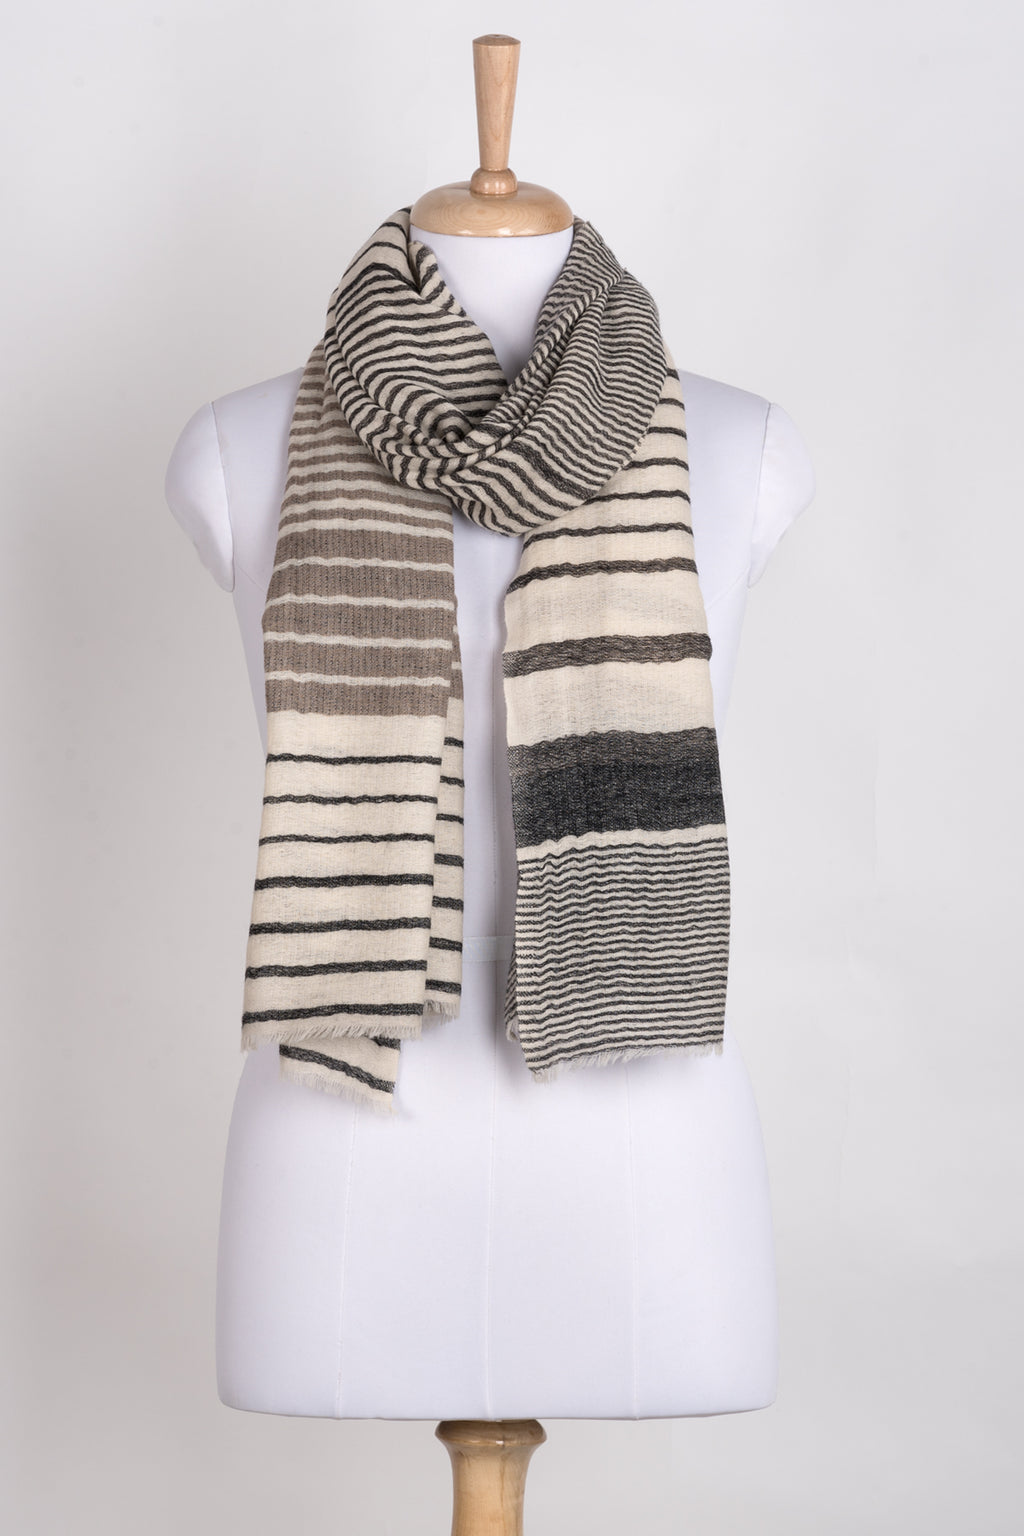 Reversible Stripes Merino Wool Scarf - Off-White Multi